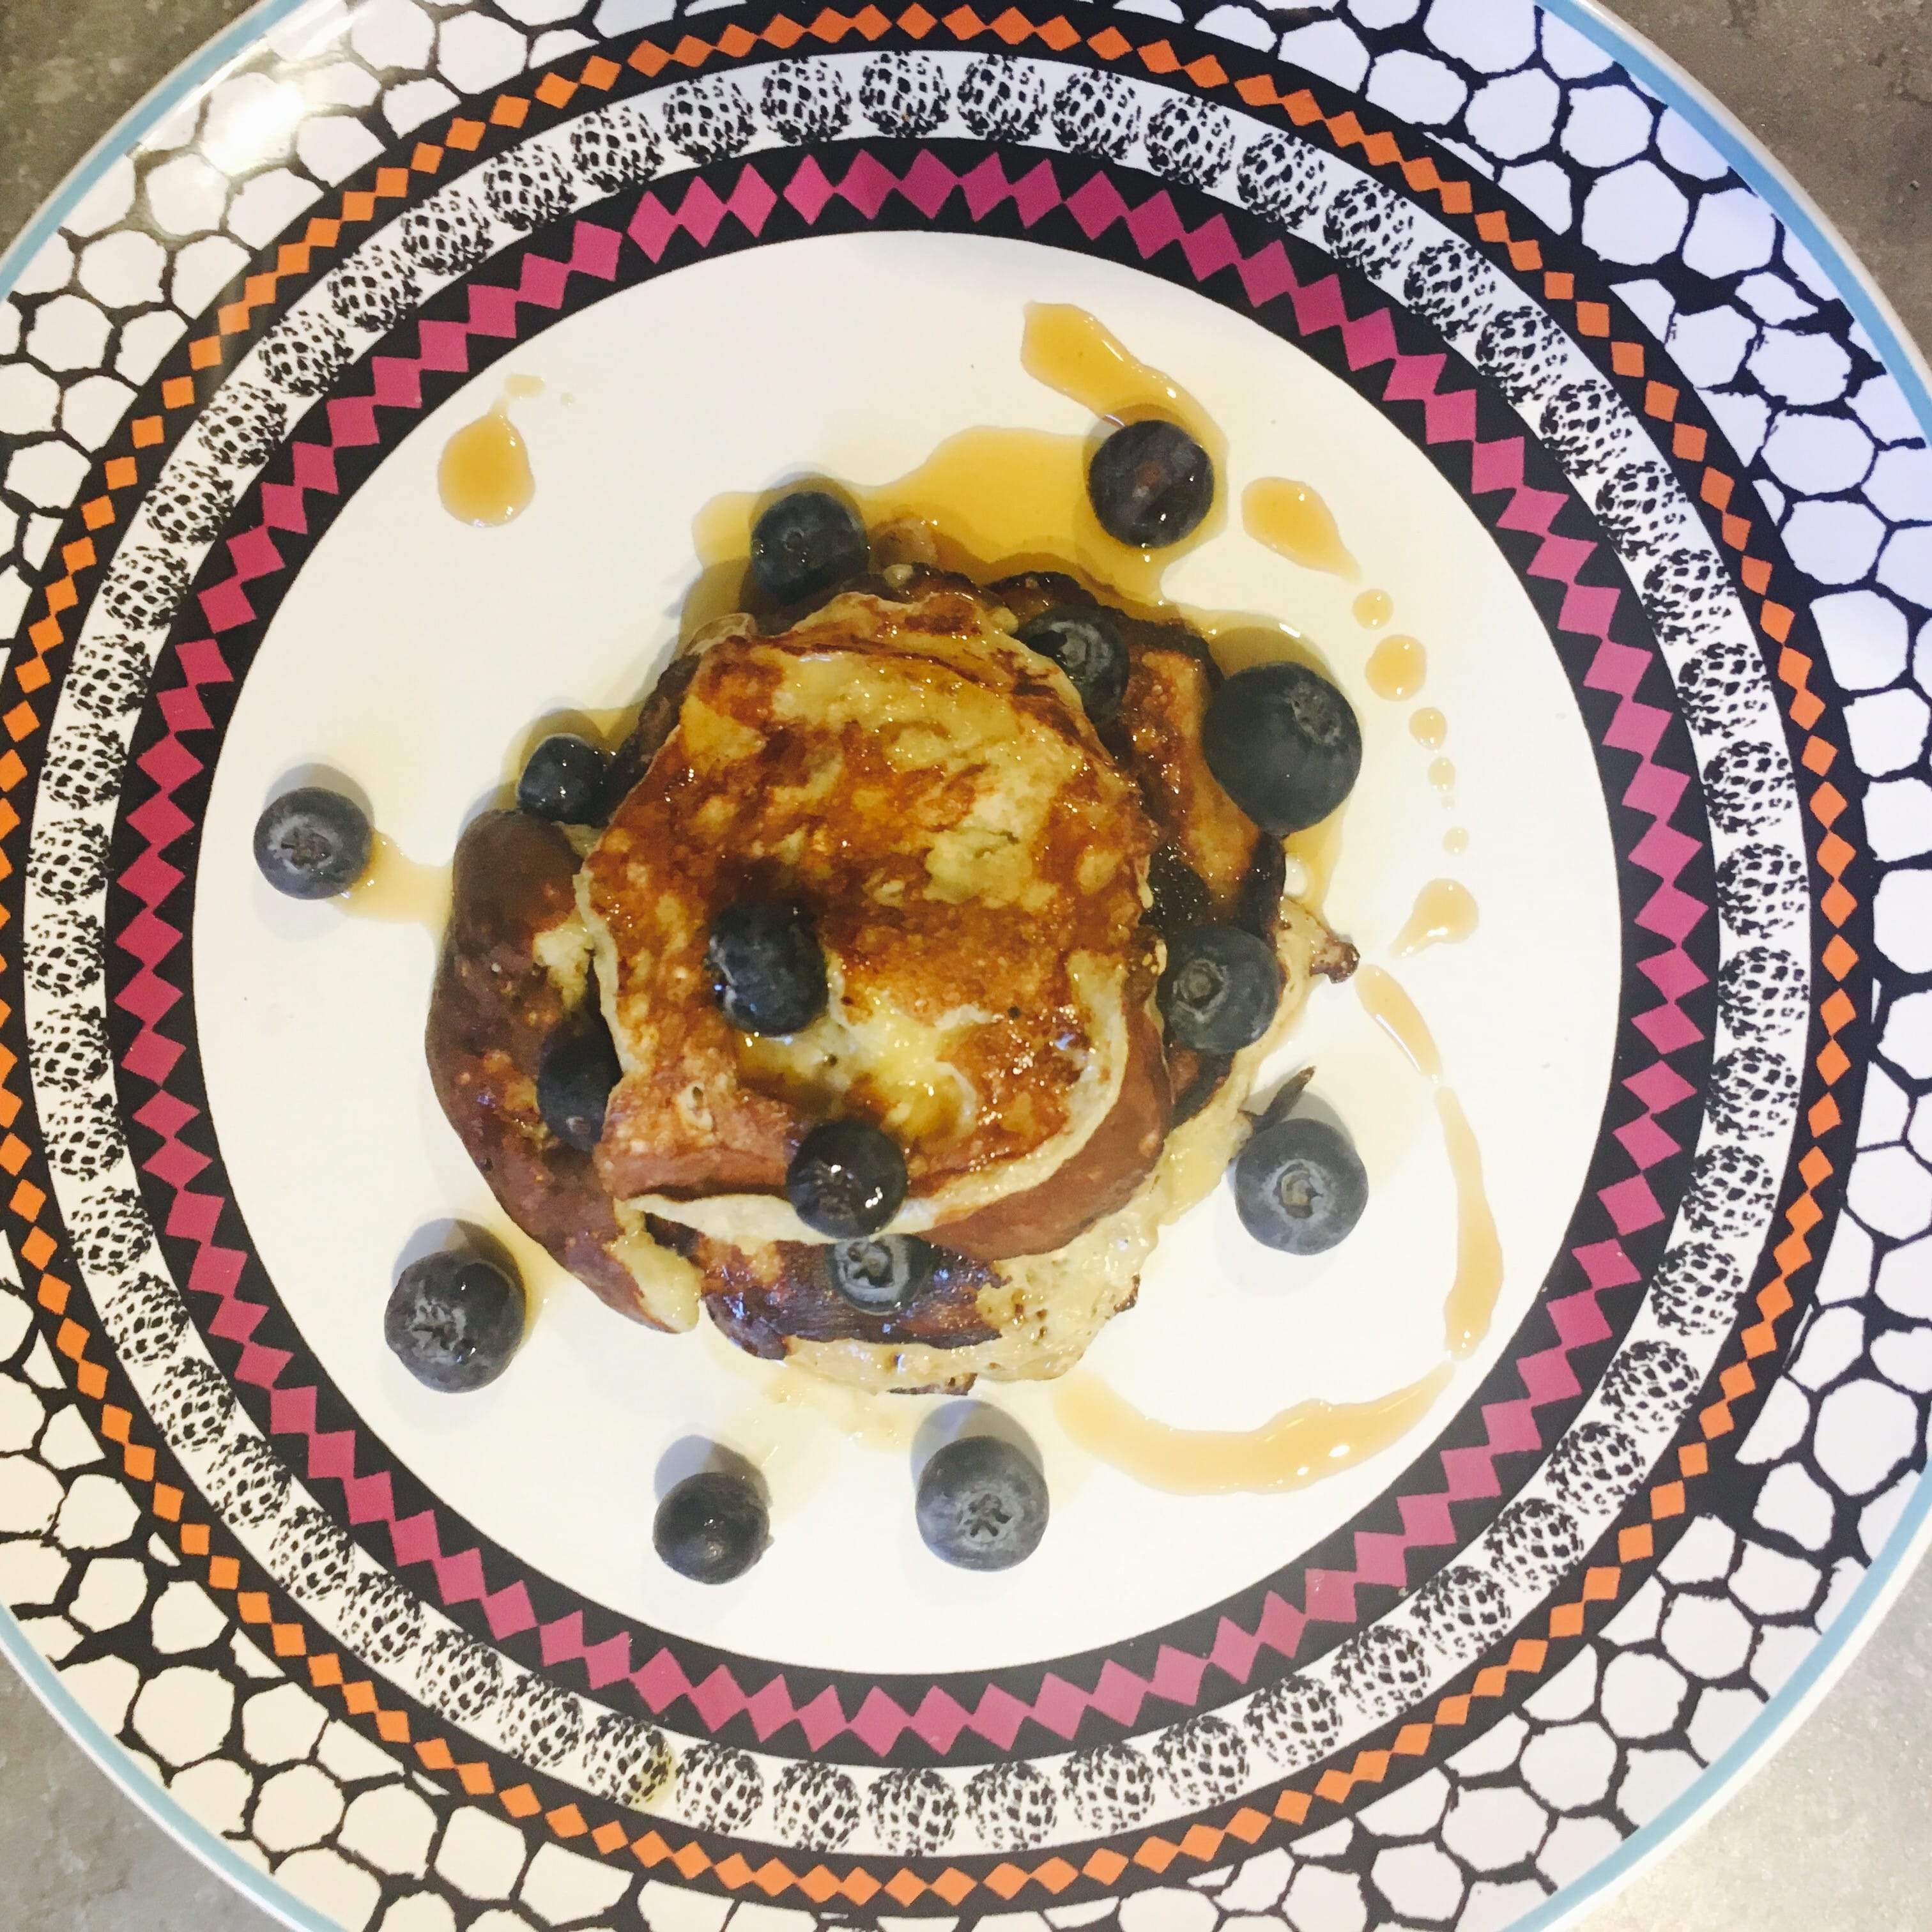 Gluten and dairy free Pancakes with Blueberries